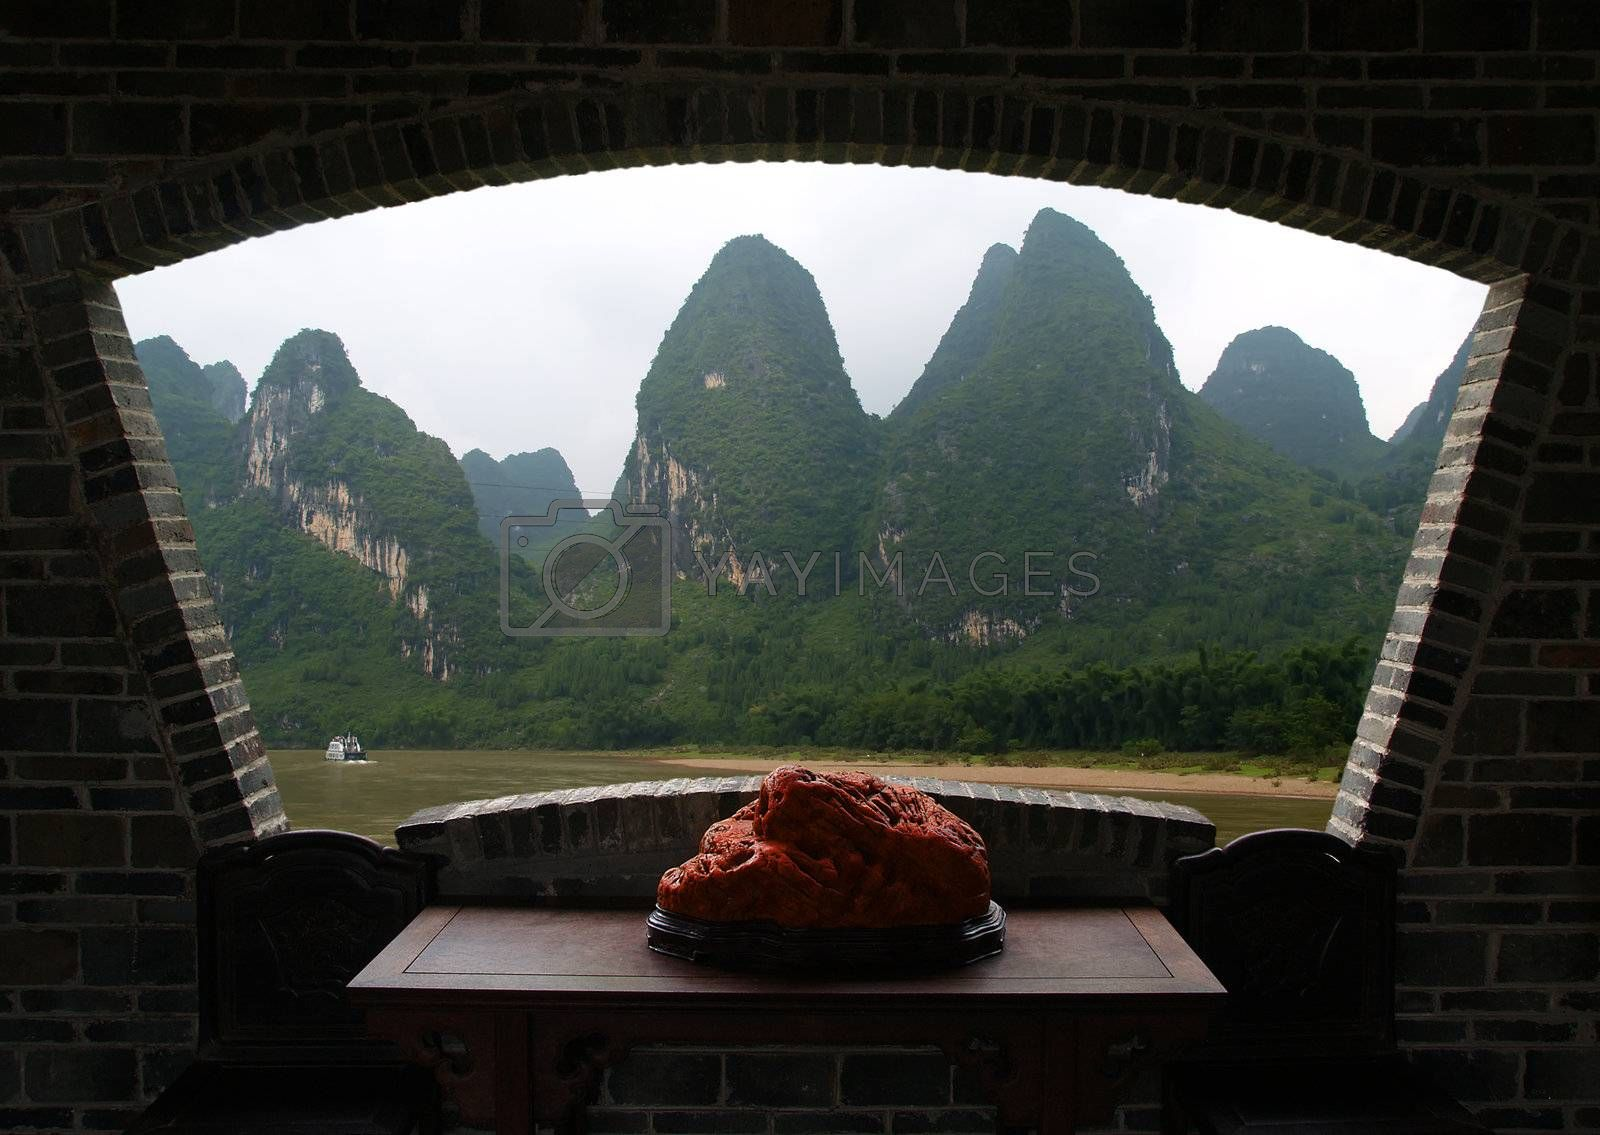 The Gui-lin landscapes in south of China